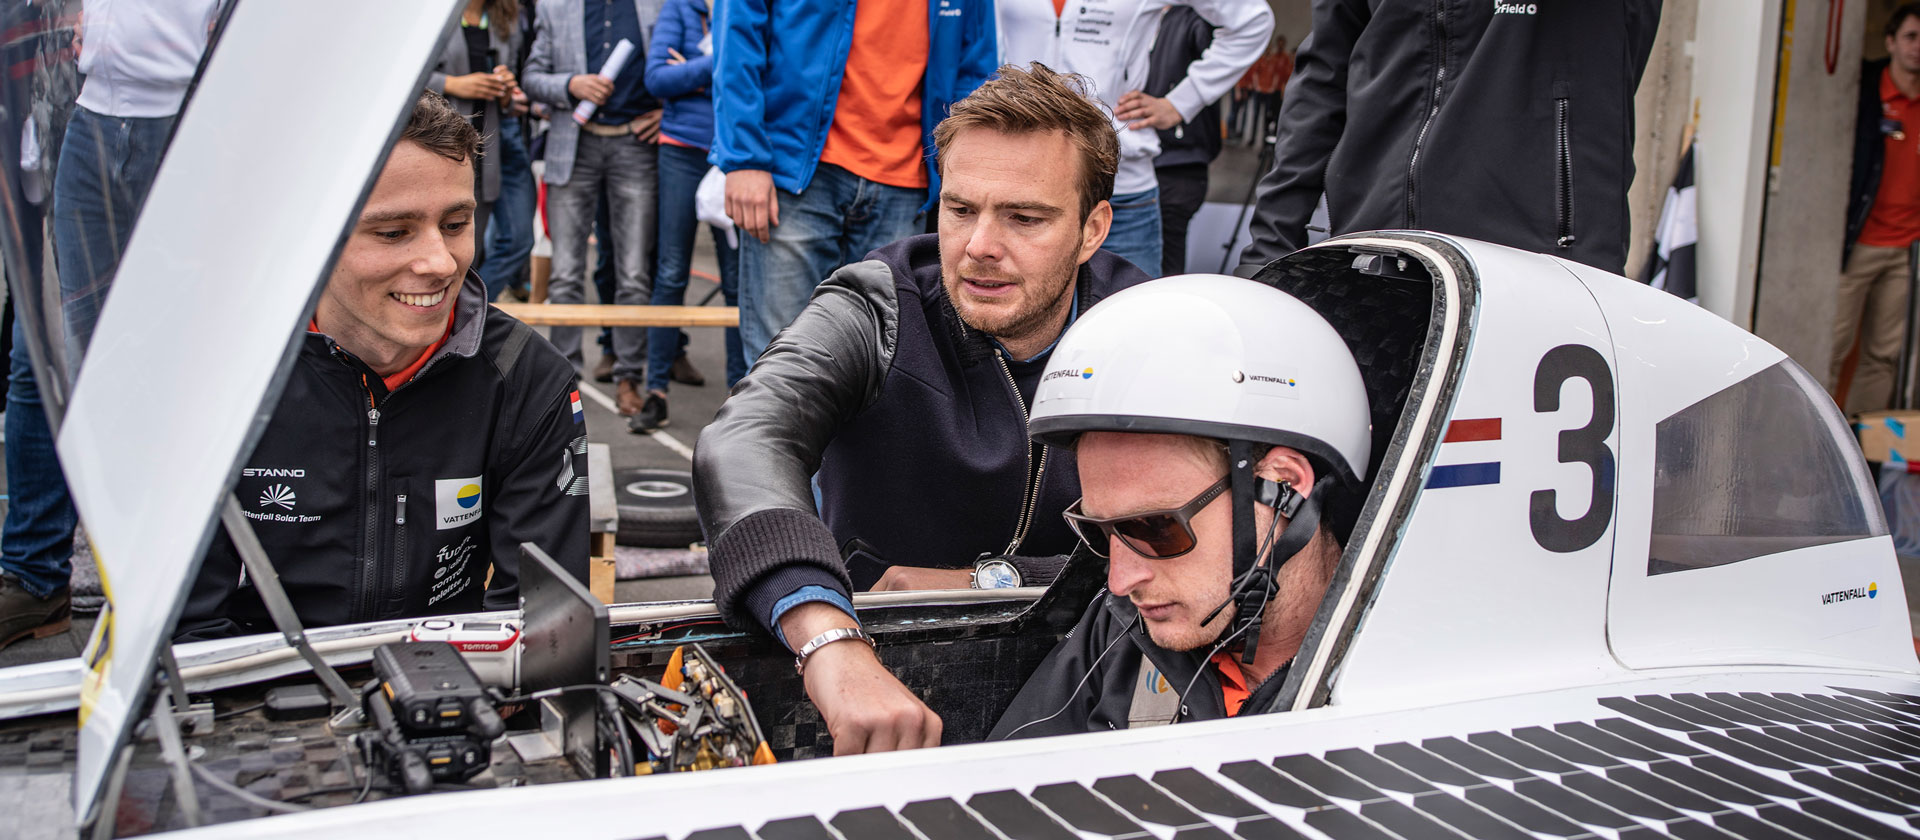 Giedo van der Garde is giving some final clues